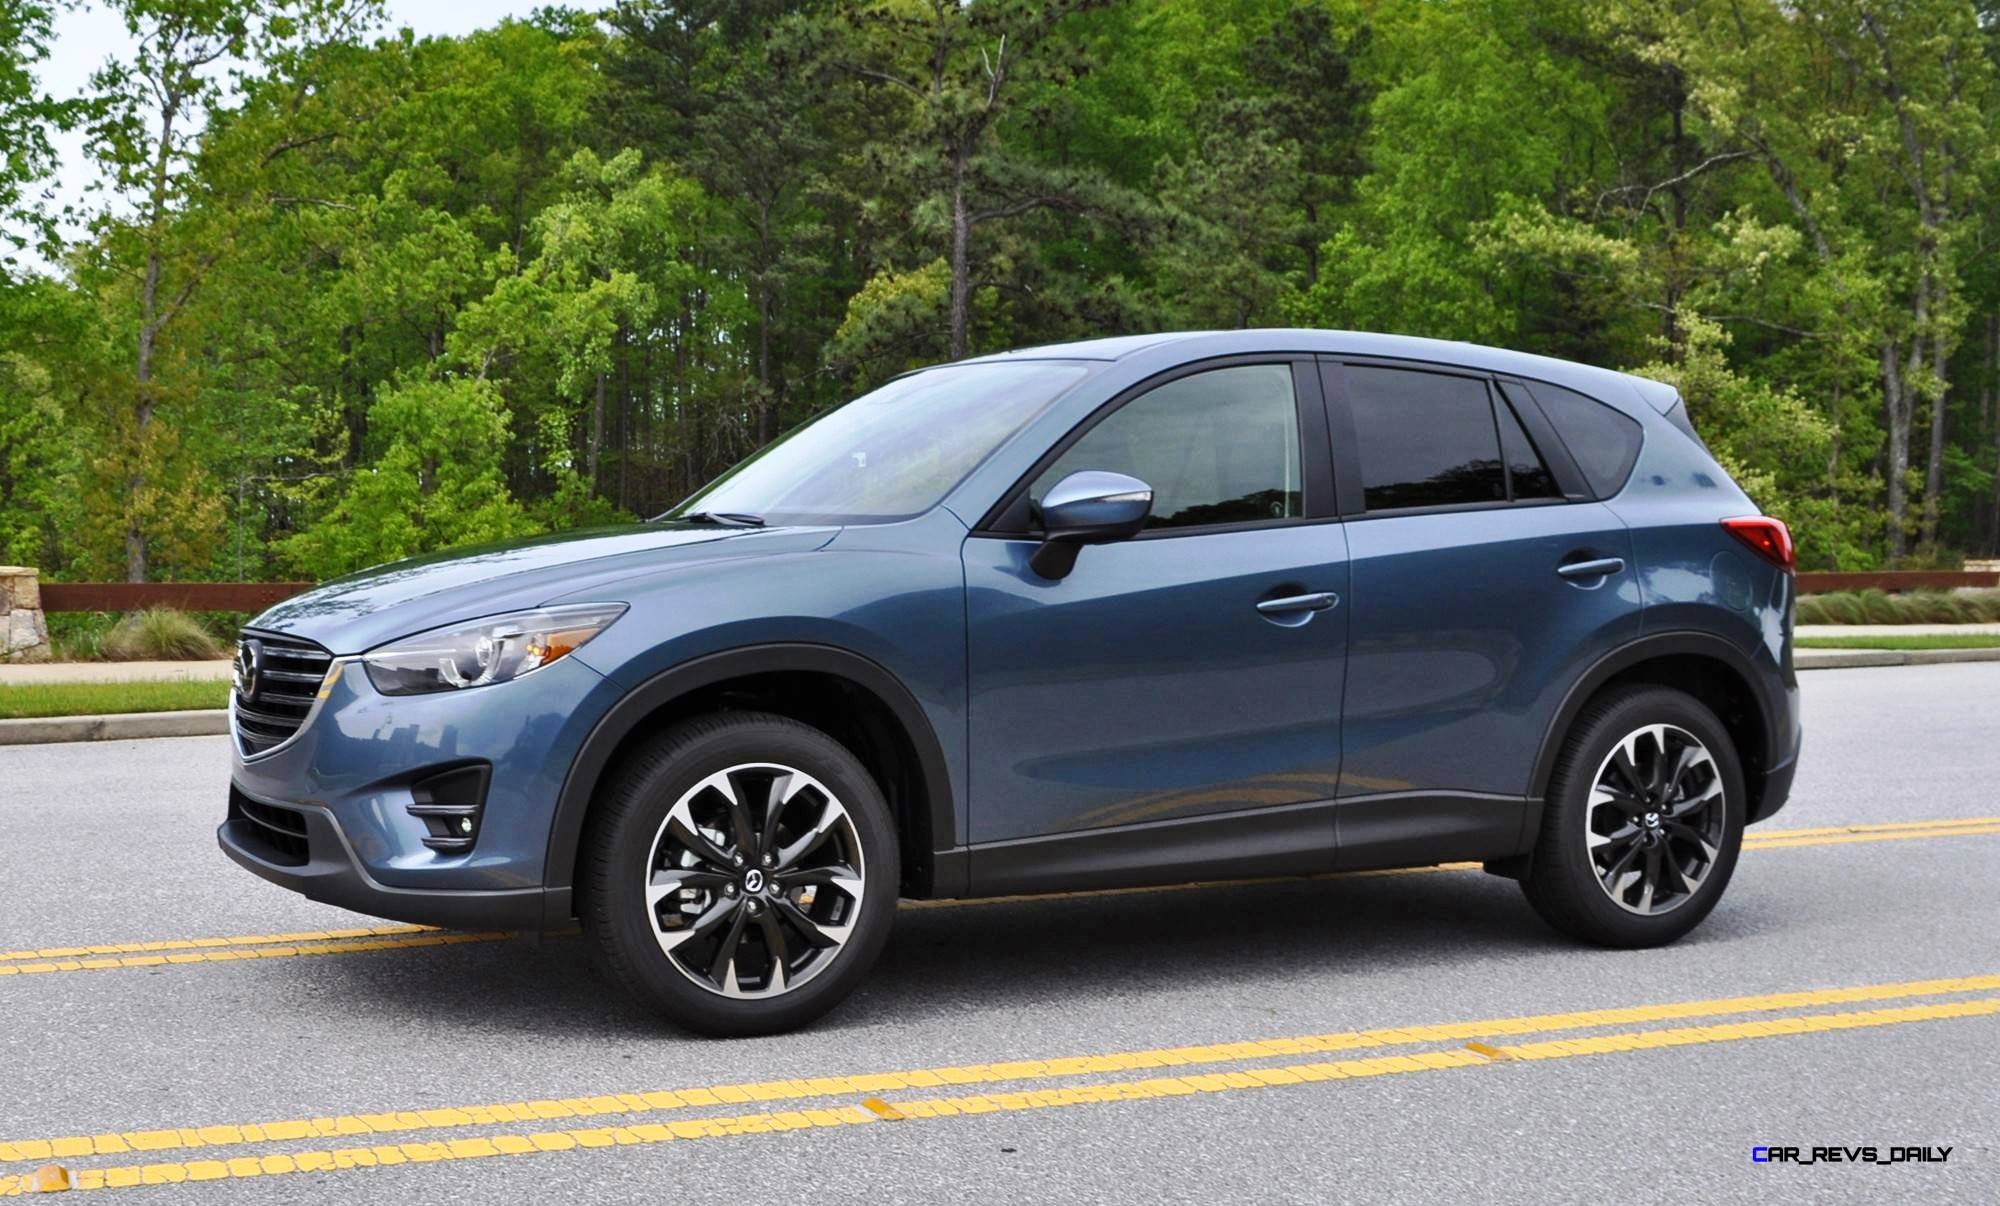 2013 mazda cx 5 grand touring awd car reviews 2013 car reviews html autos weblog. Black Bedroom Furniture Sets. Home Design Ideas